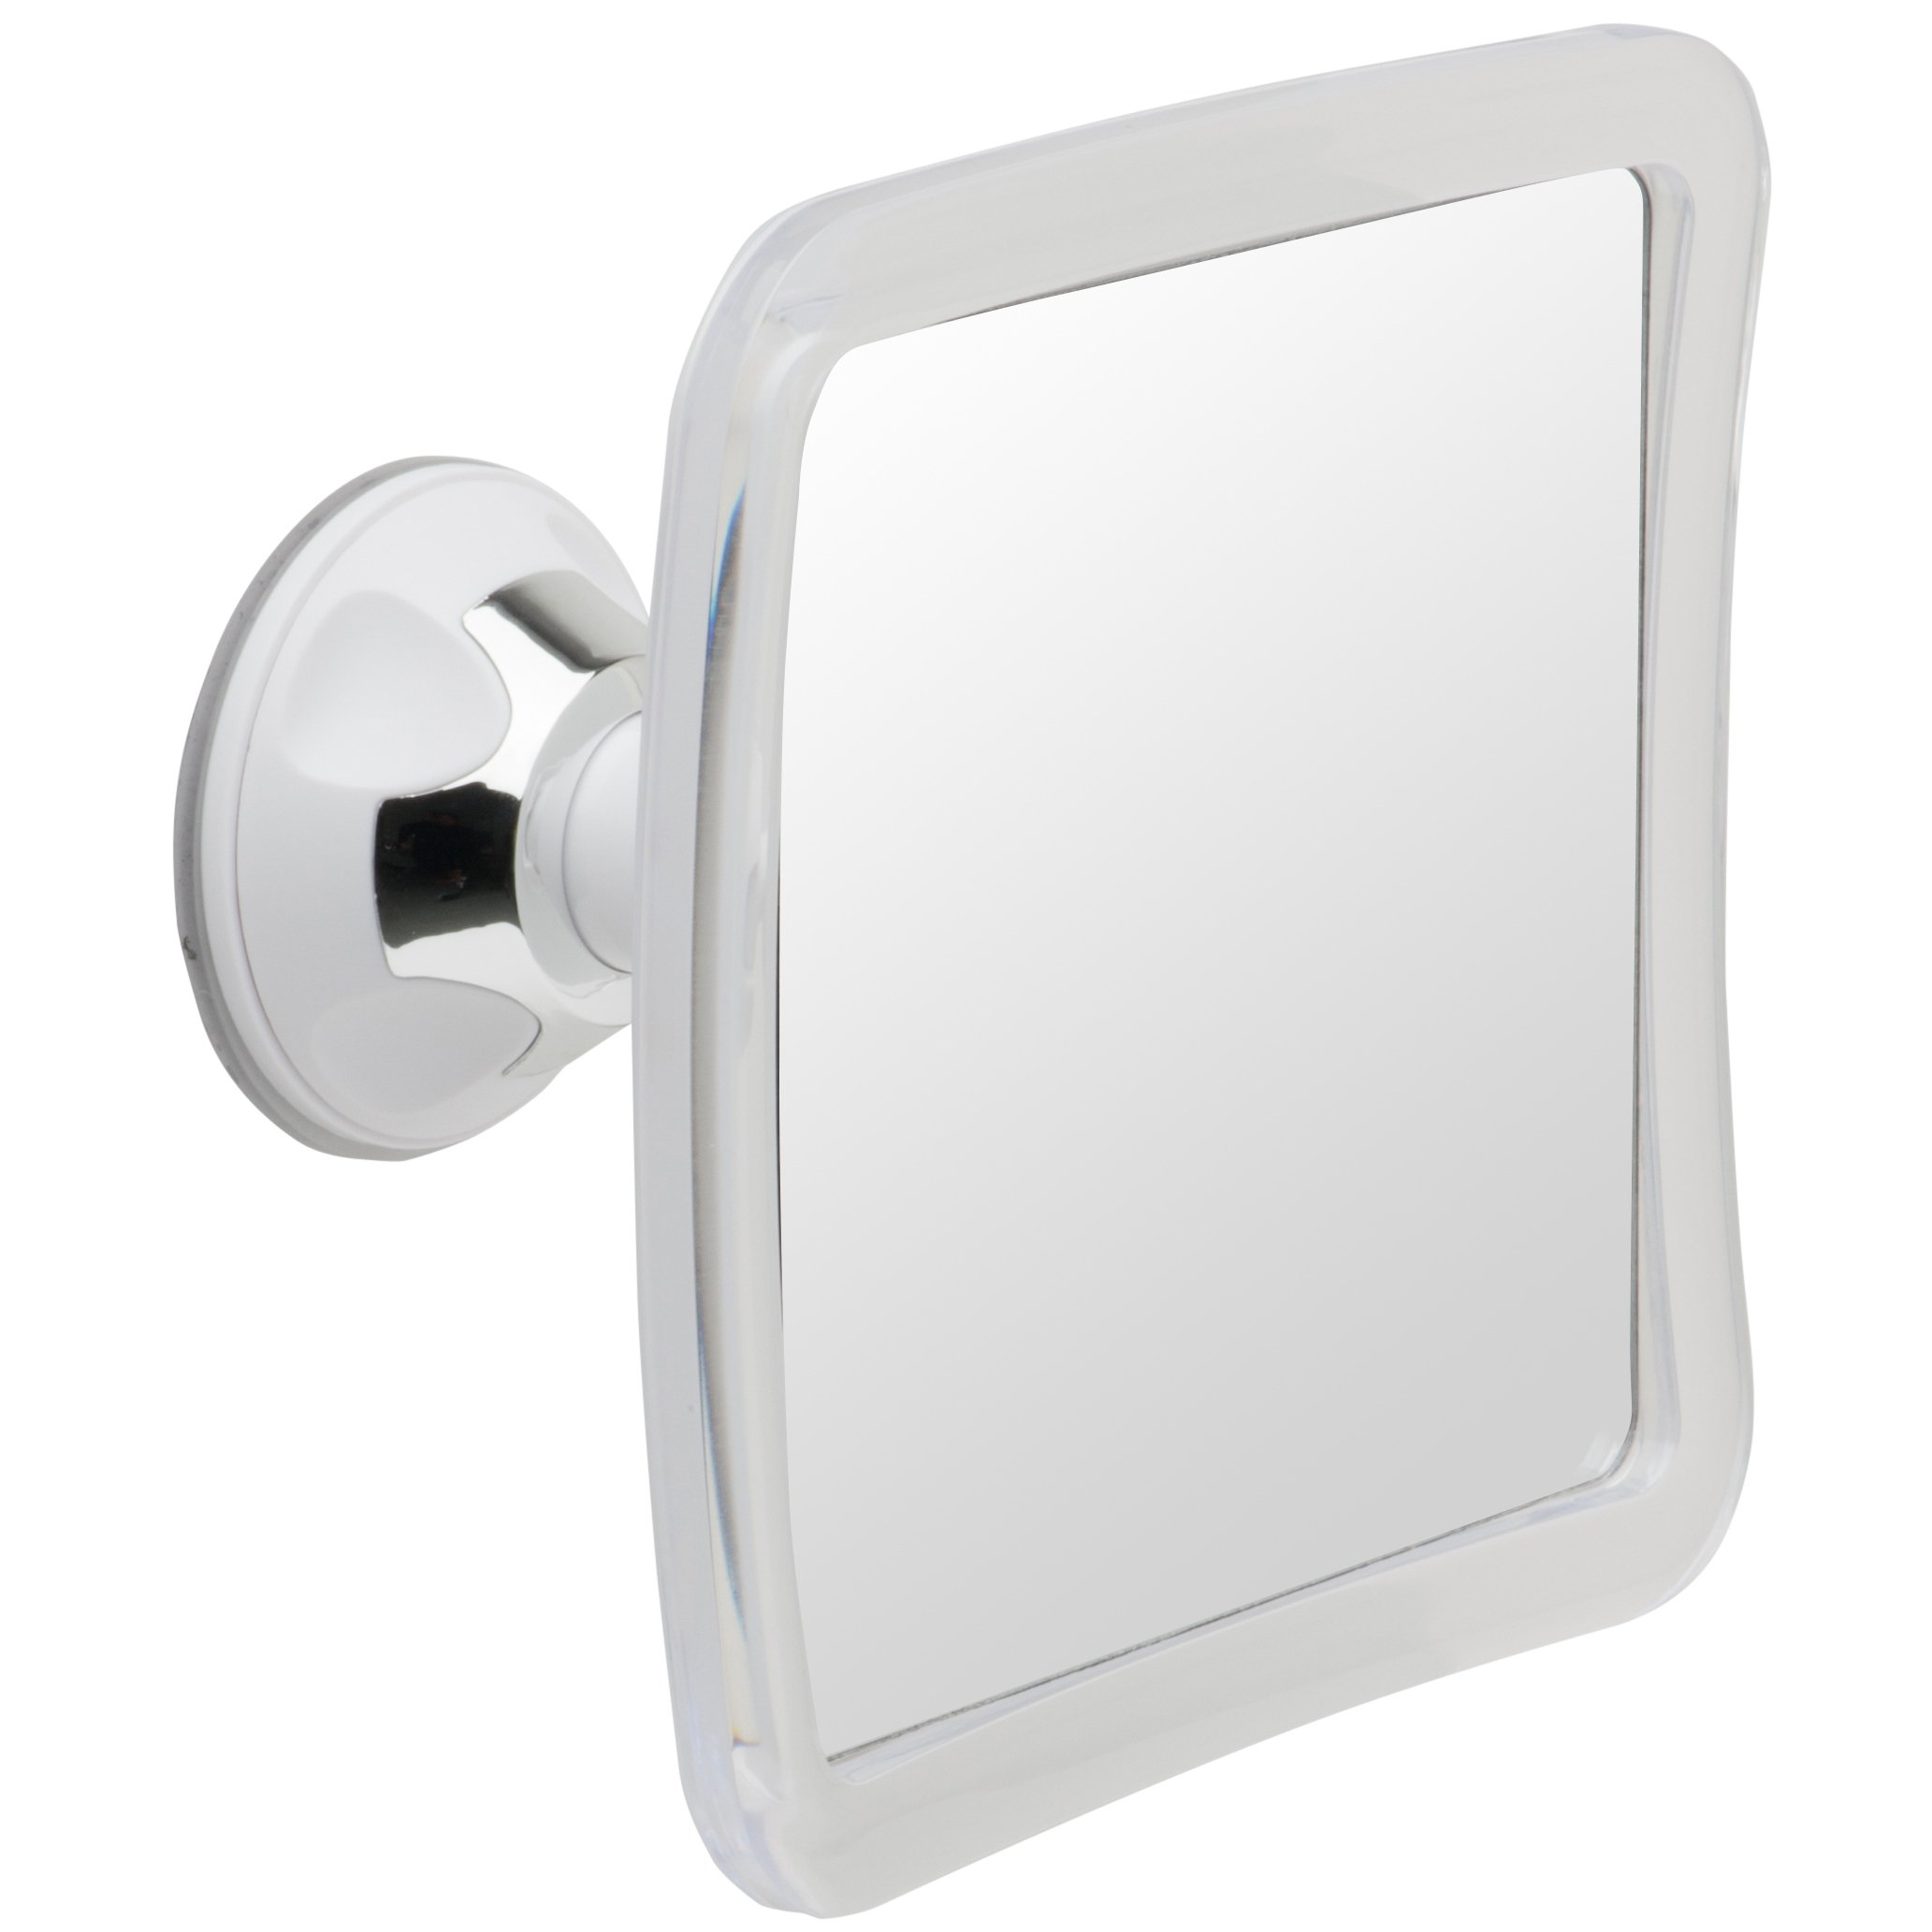 Amazon.com : Fogless Shower Mirror for Shaving - No Fog Chrome ...